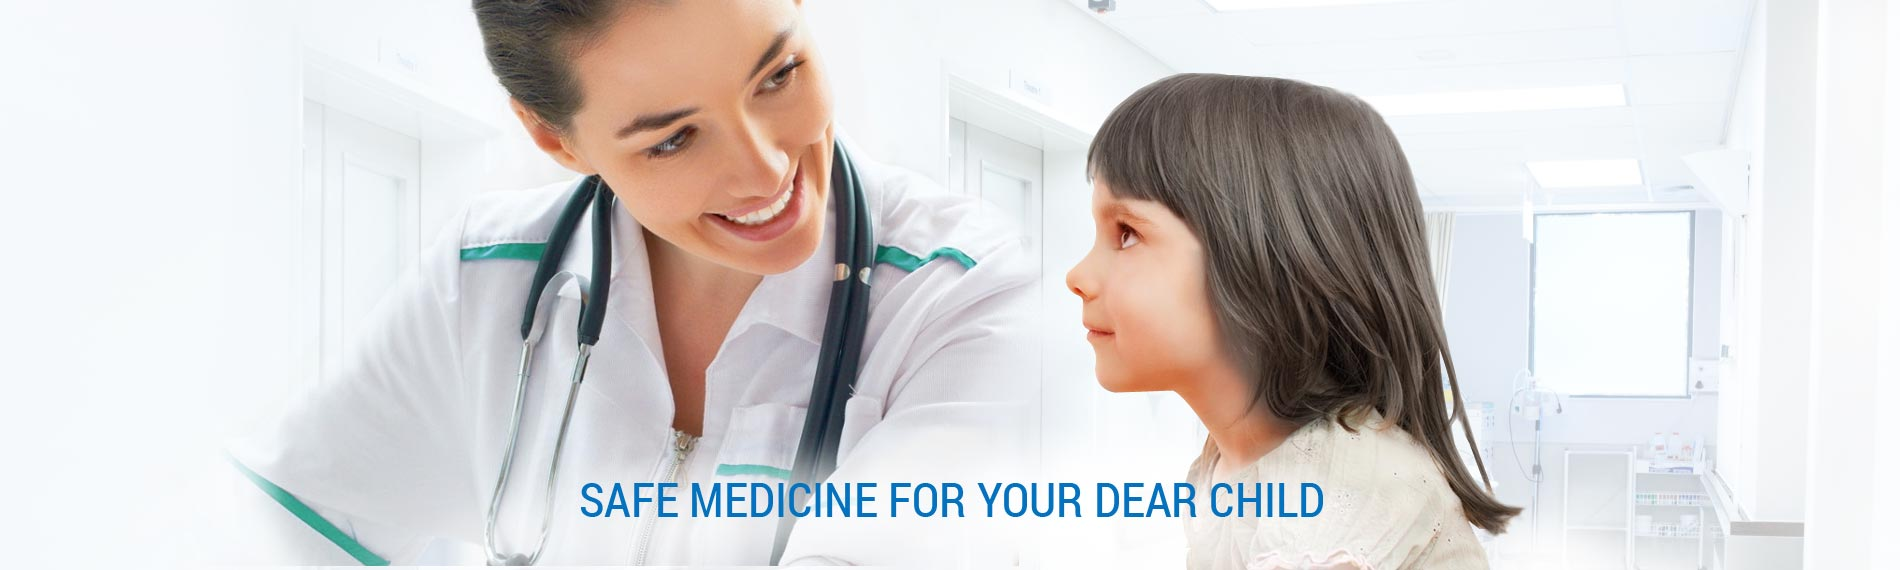 Safe medicine for your dear child